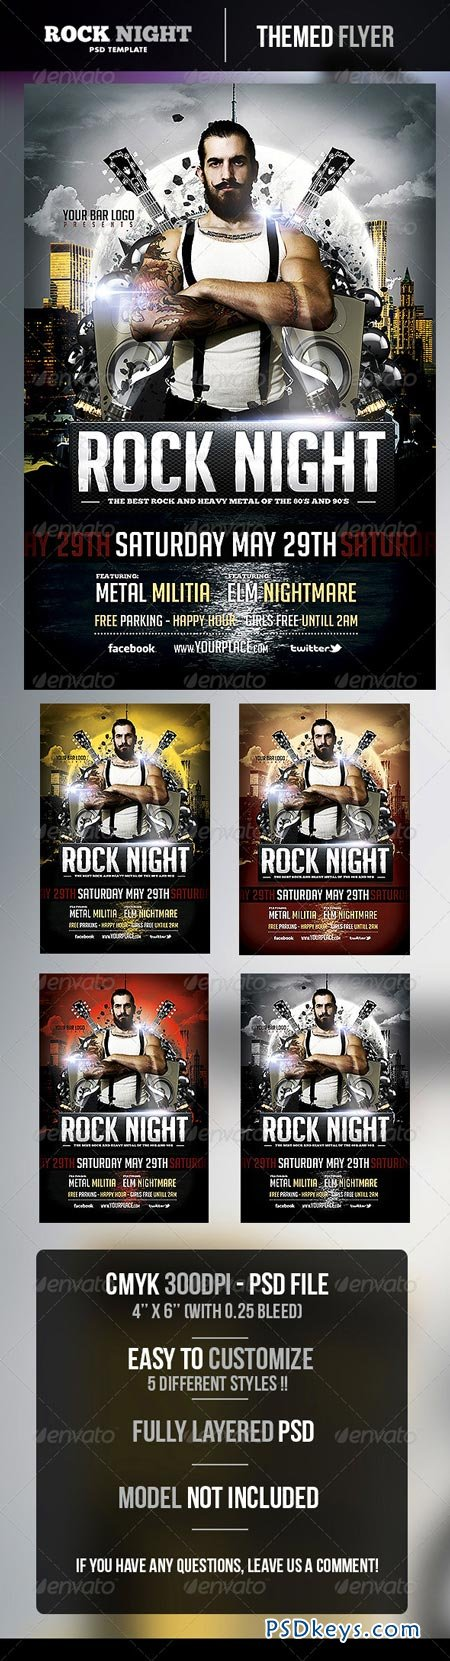 Rock Night Flyer Template 4912675